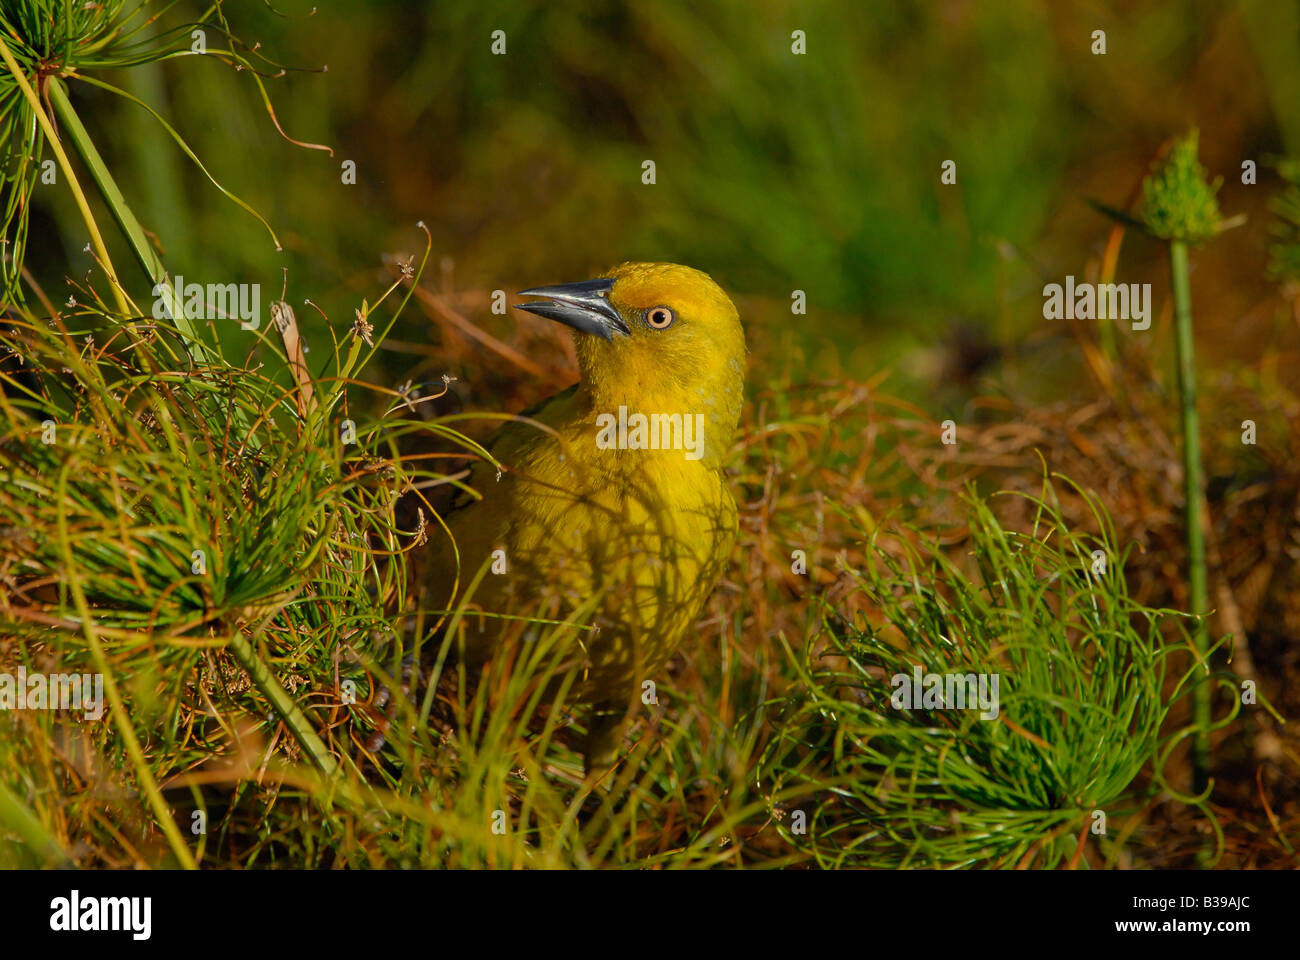 Male Cape Weaver sitting on papyrus plant, Helderberg Nature Reserve, Cape, South Africa - Stock Image